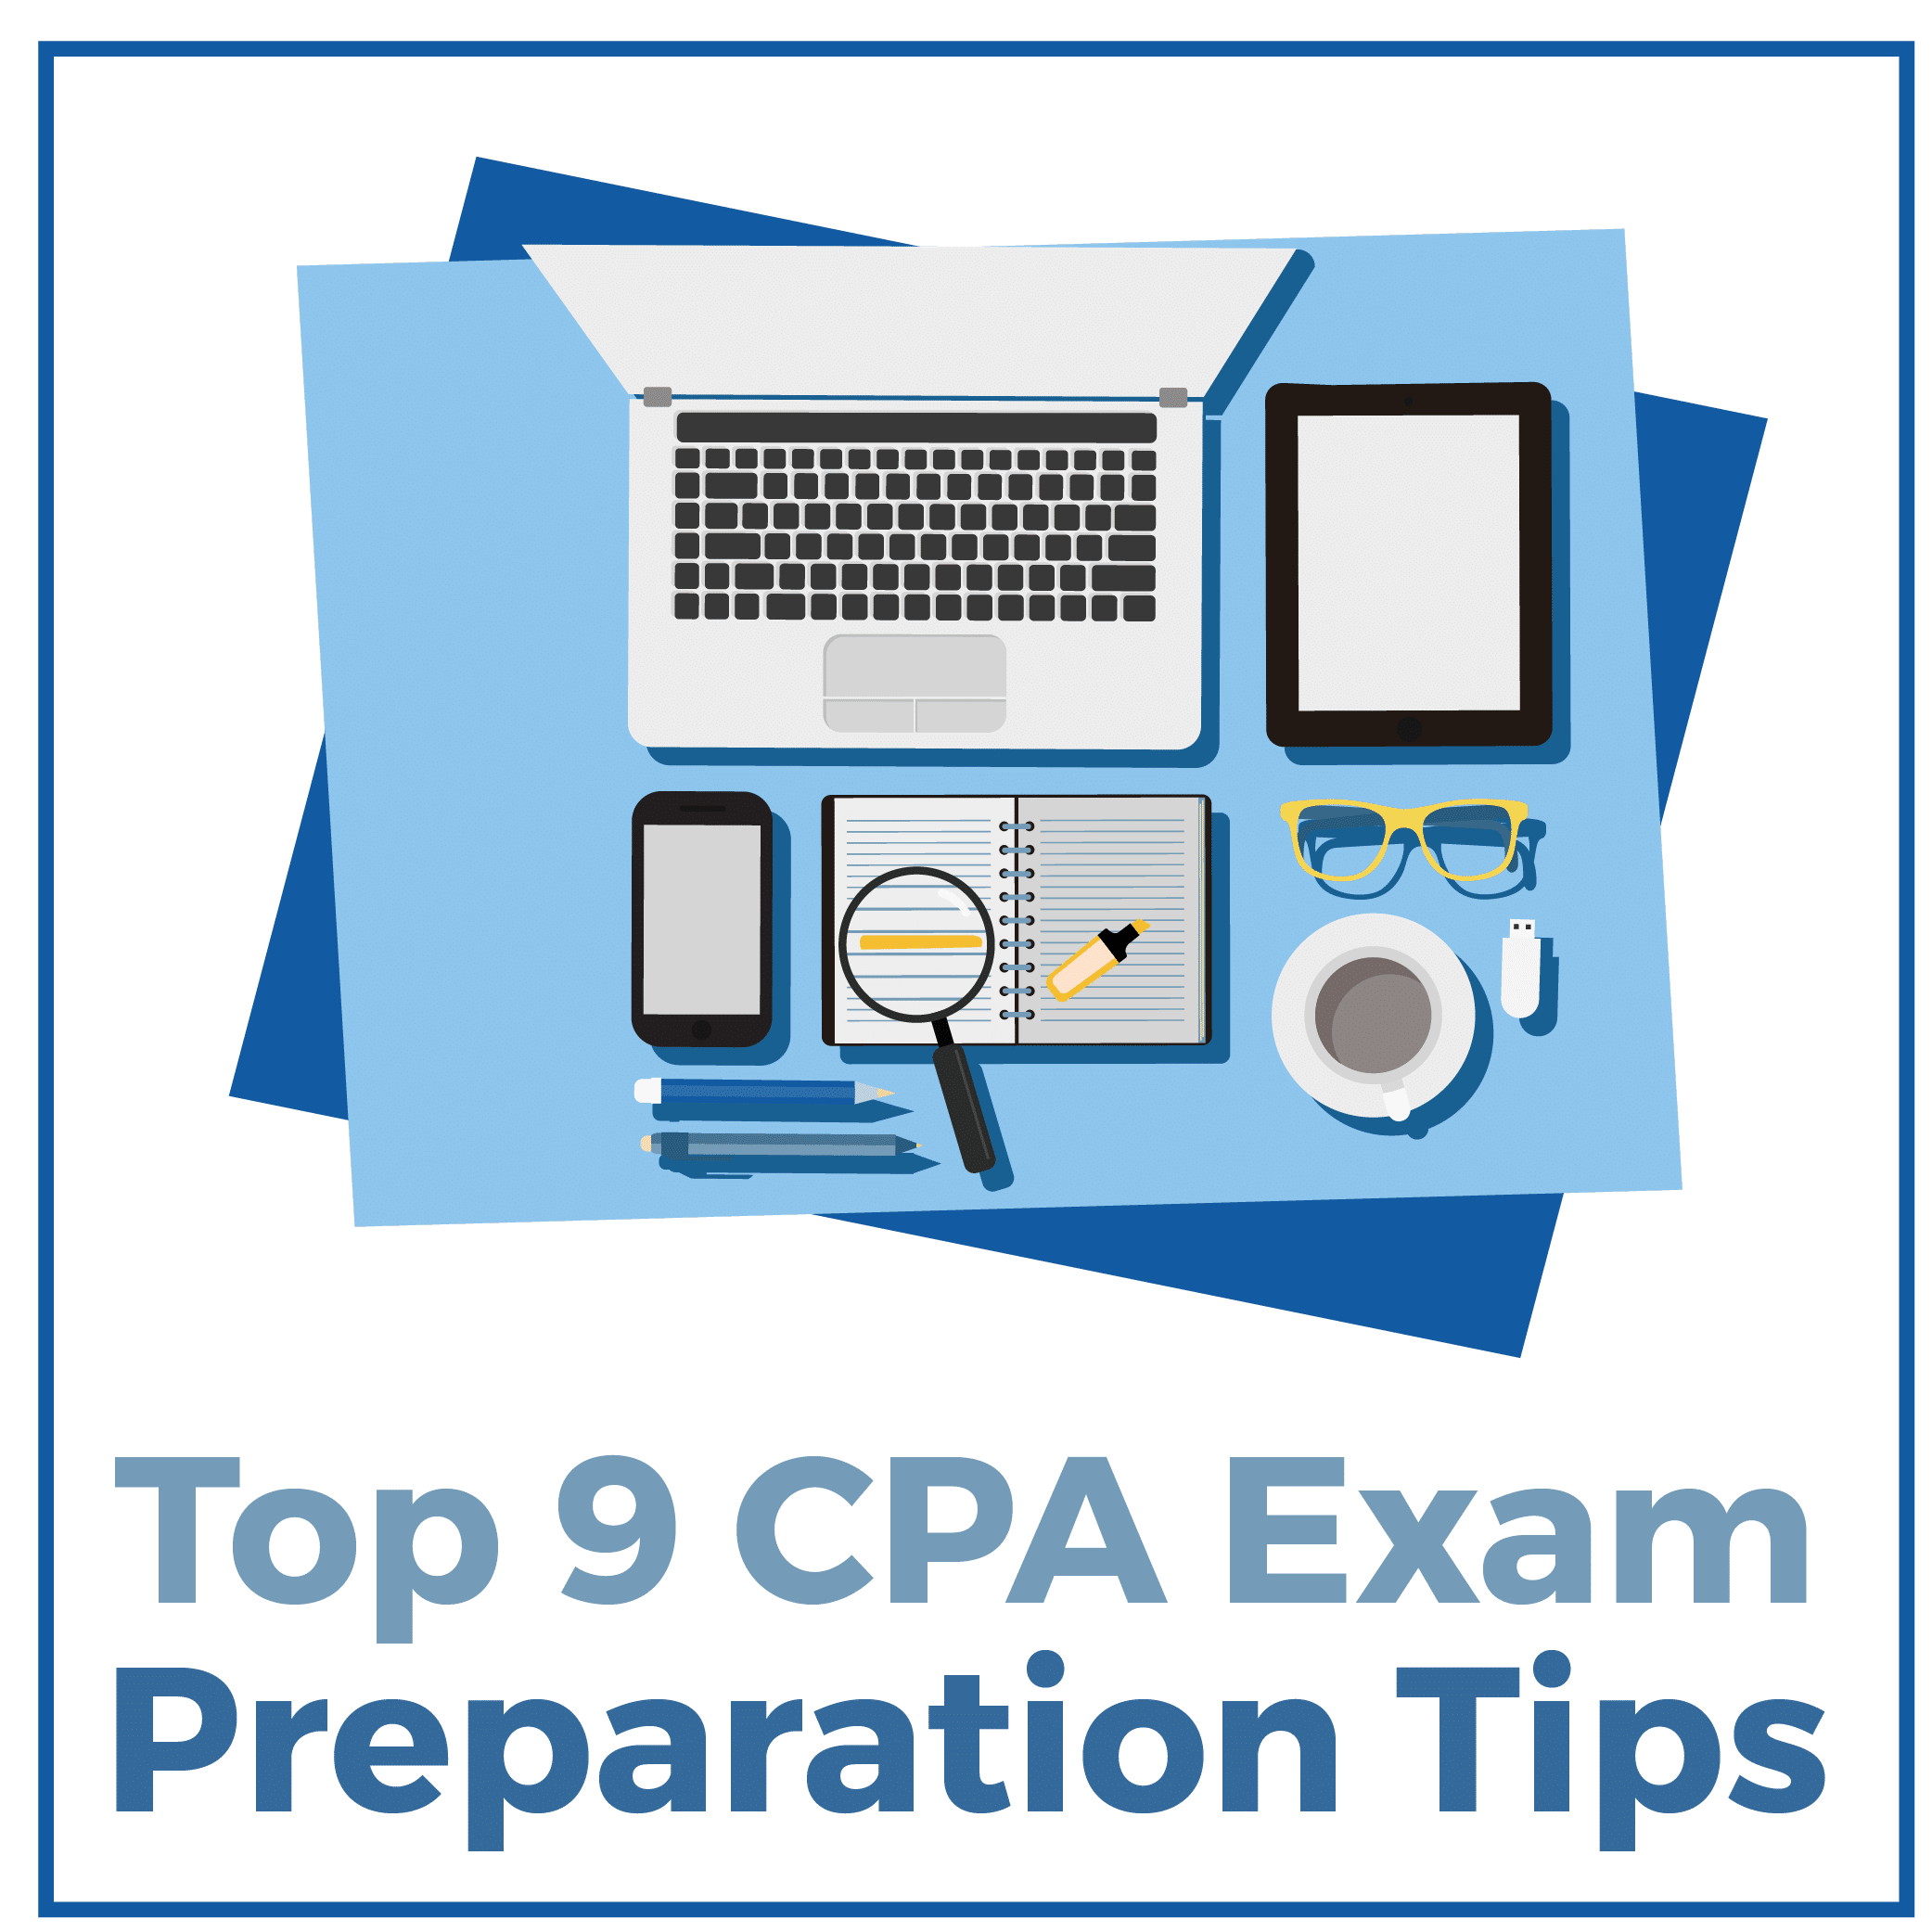 Top 9 CPA Exam Preparation Tips